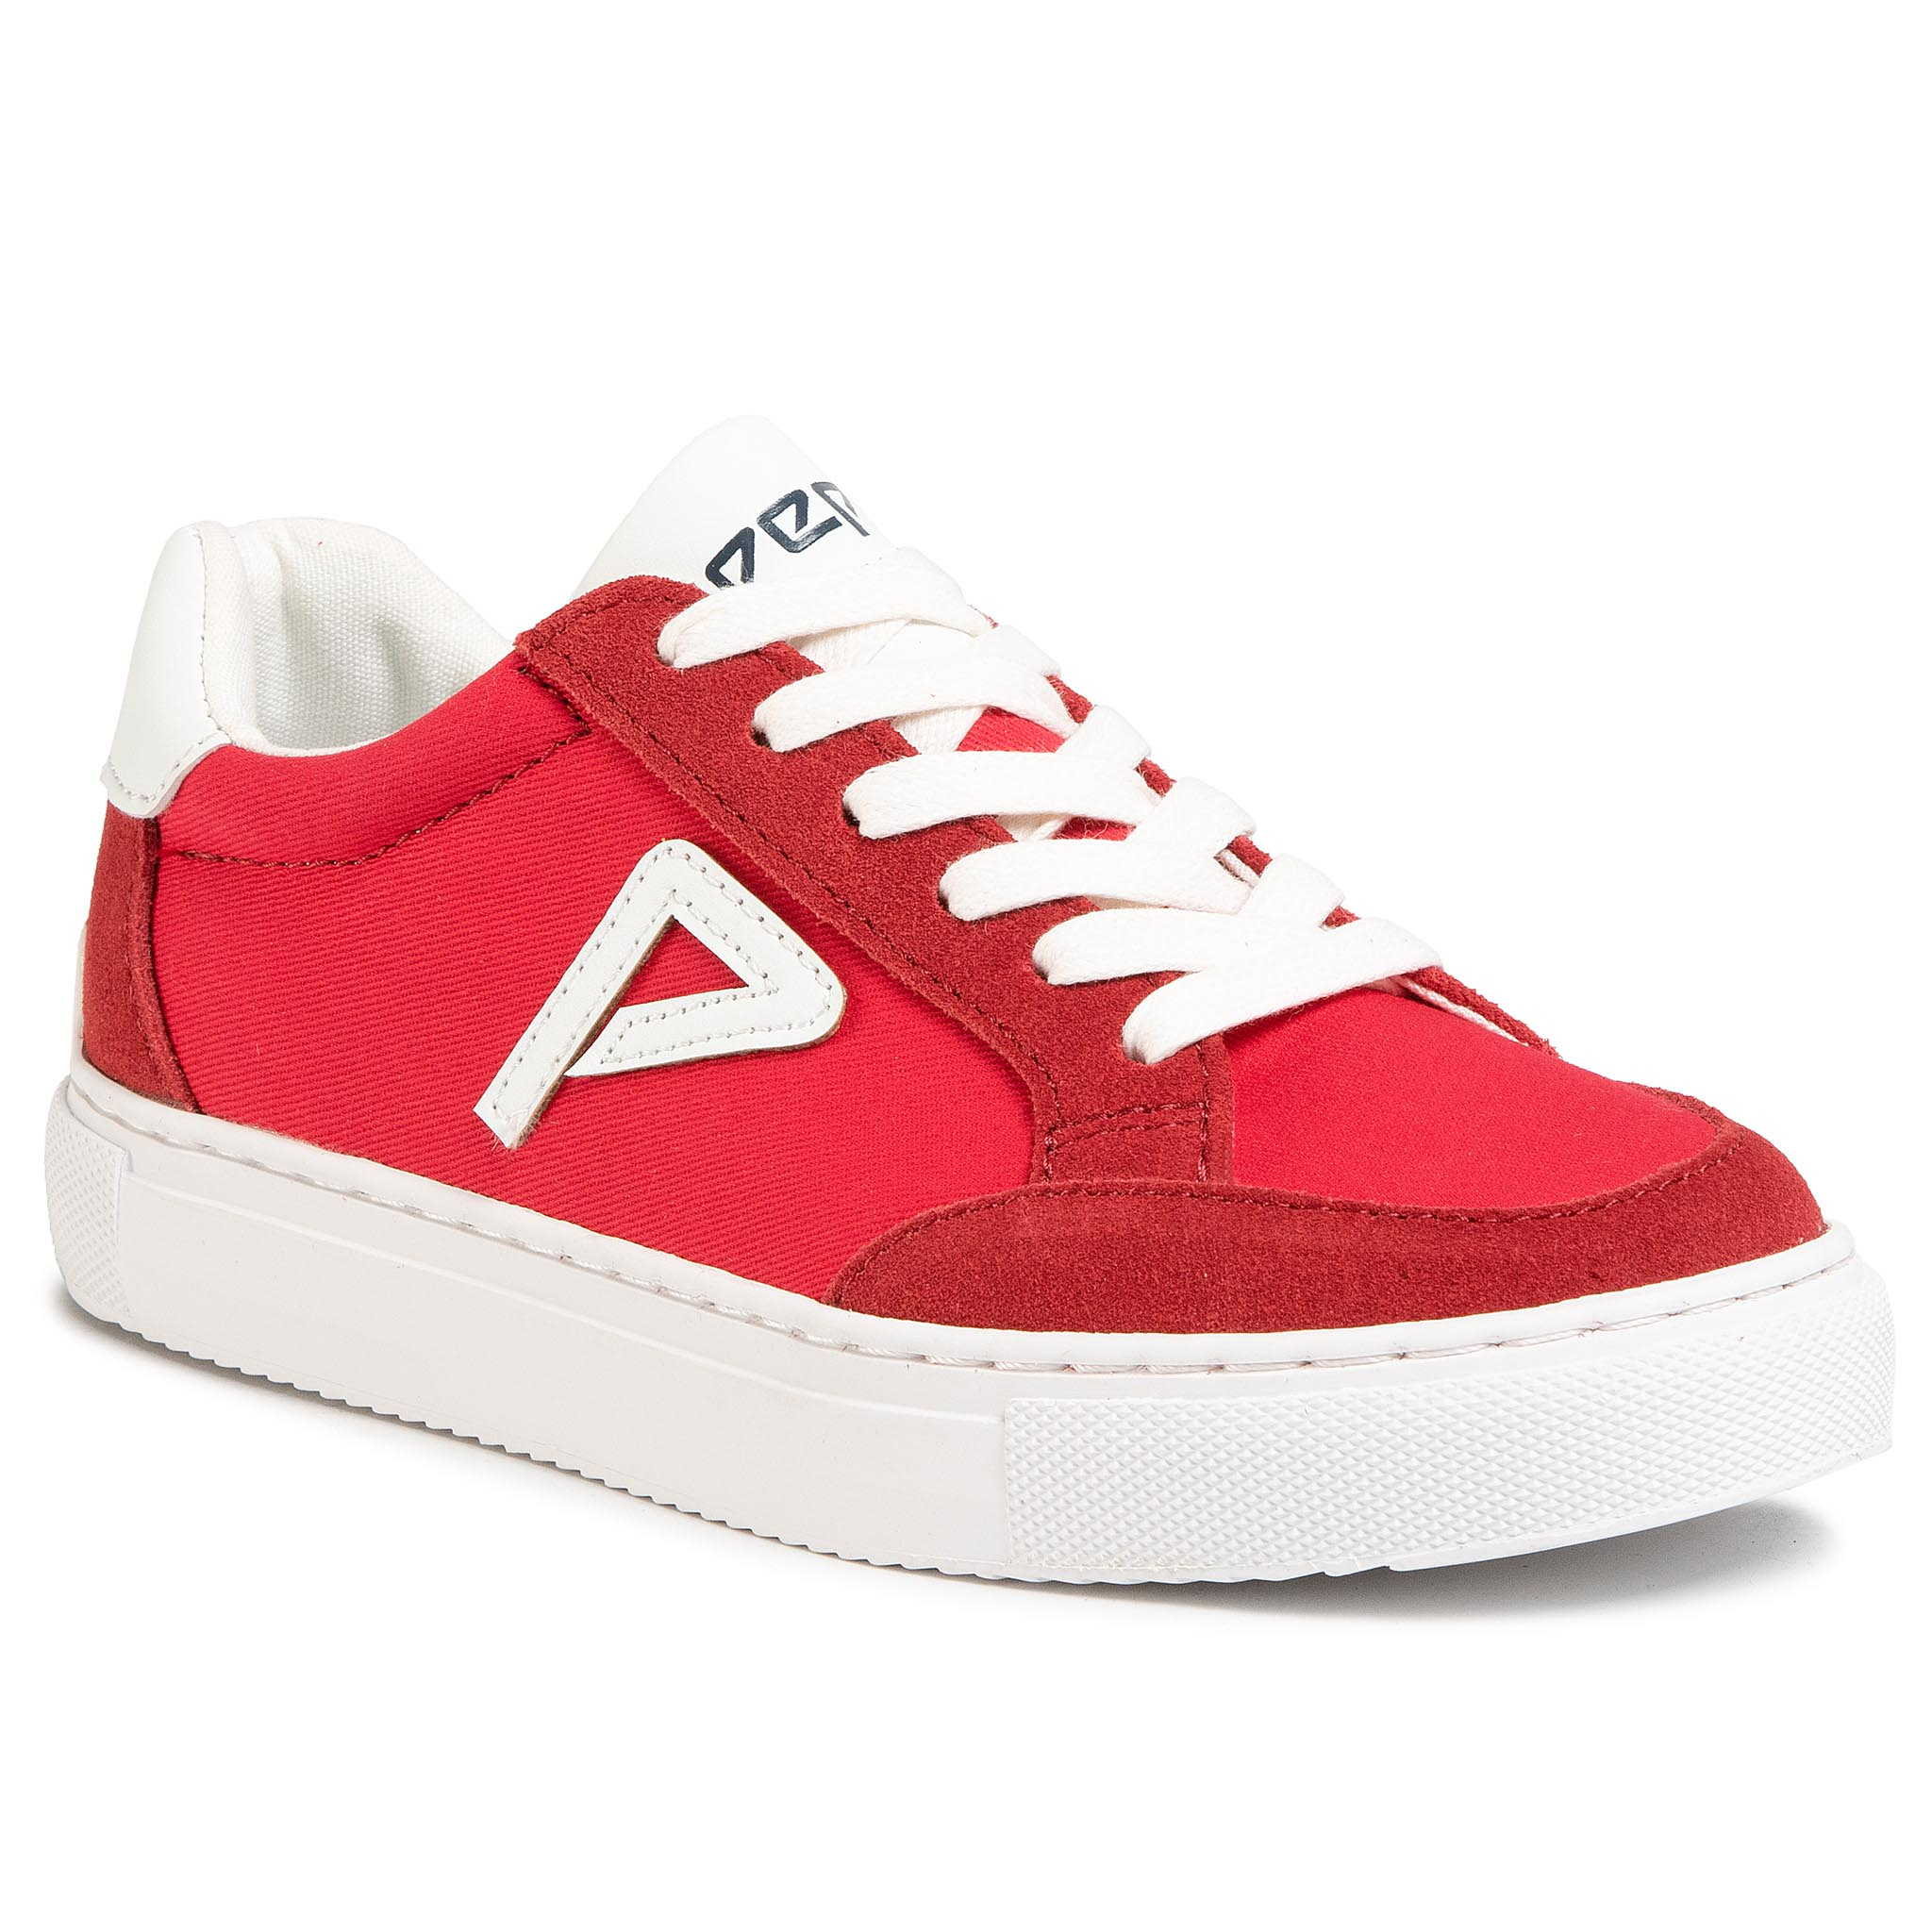 Sneakers PEPE JEANS - Adams Archive Boys PBS30434 Red 255